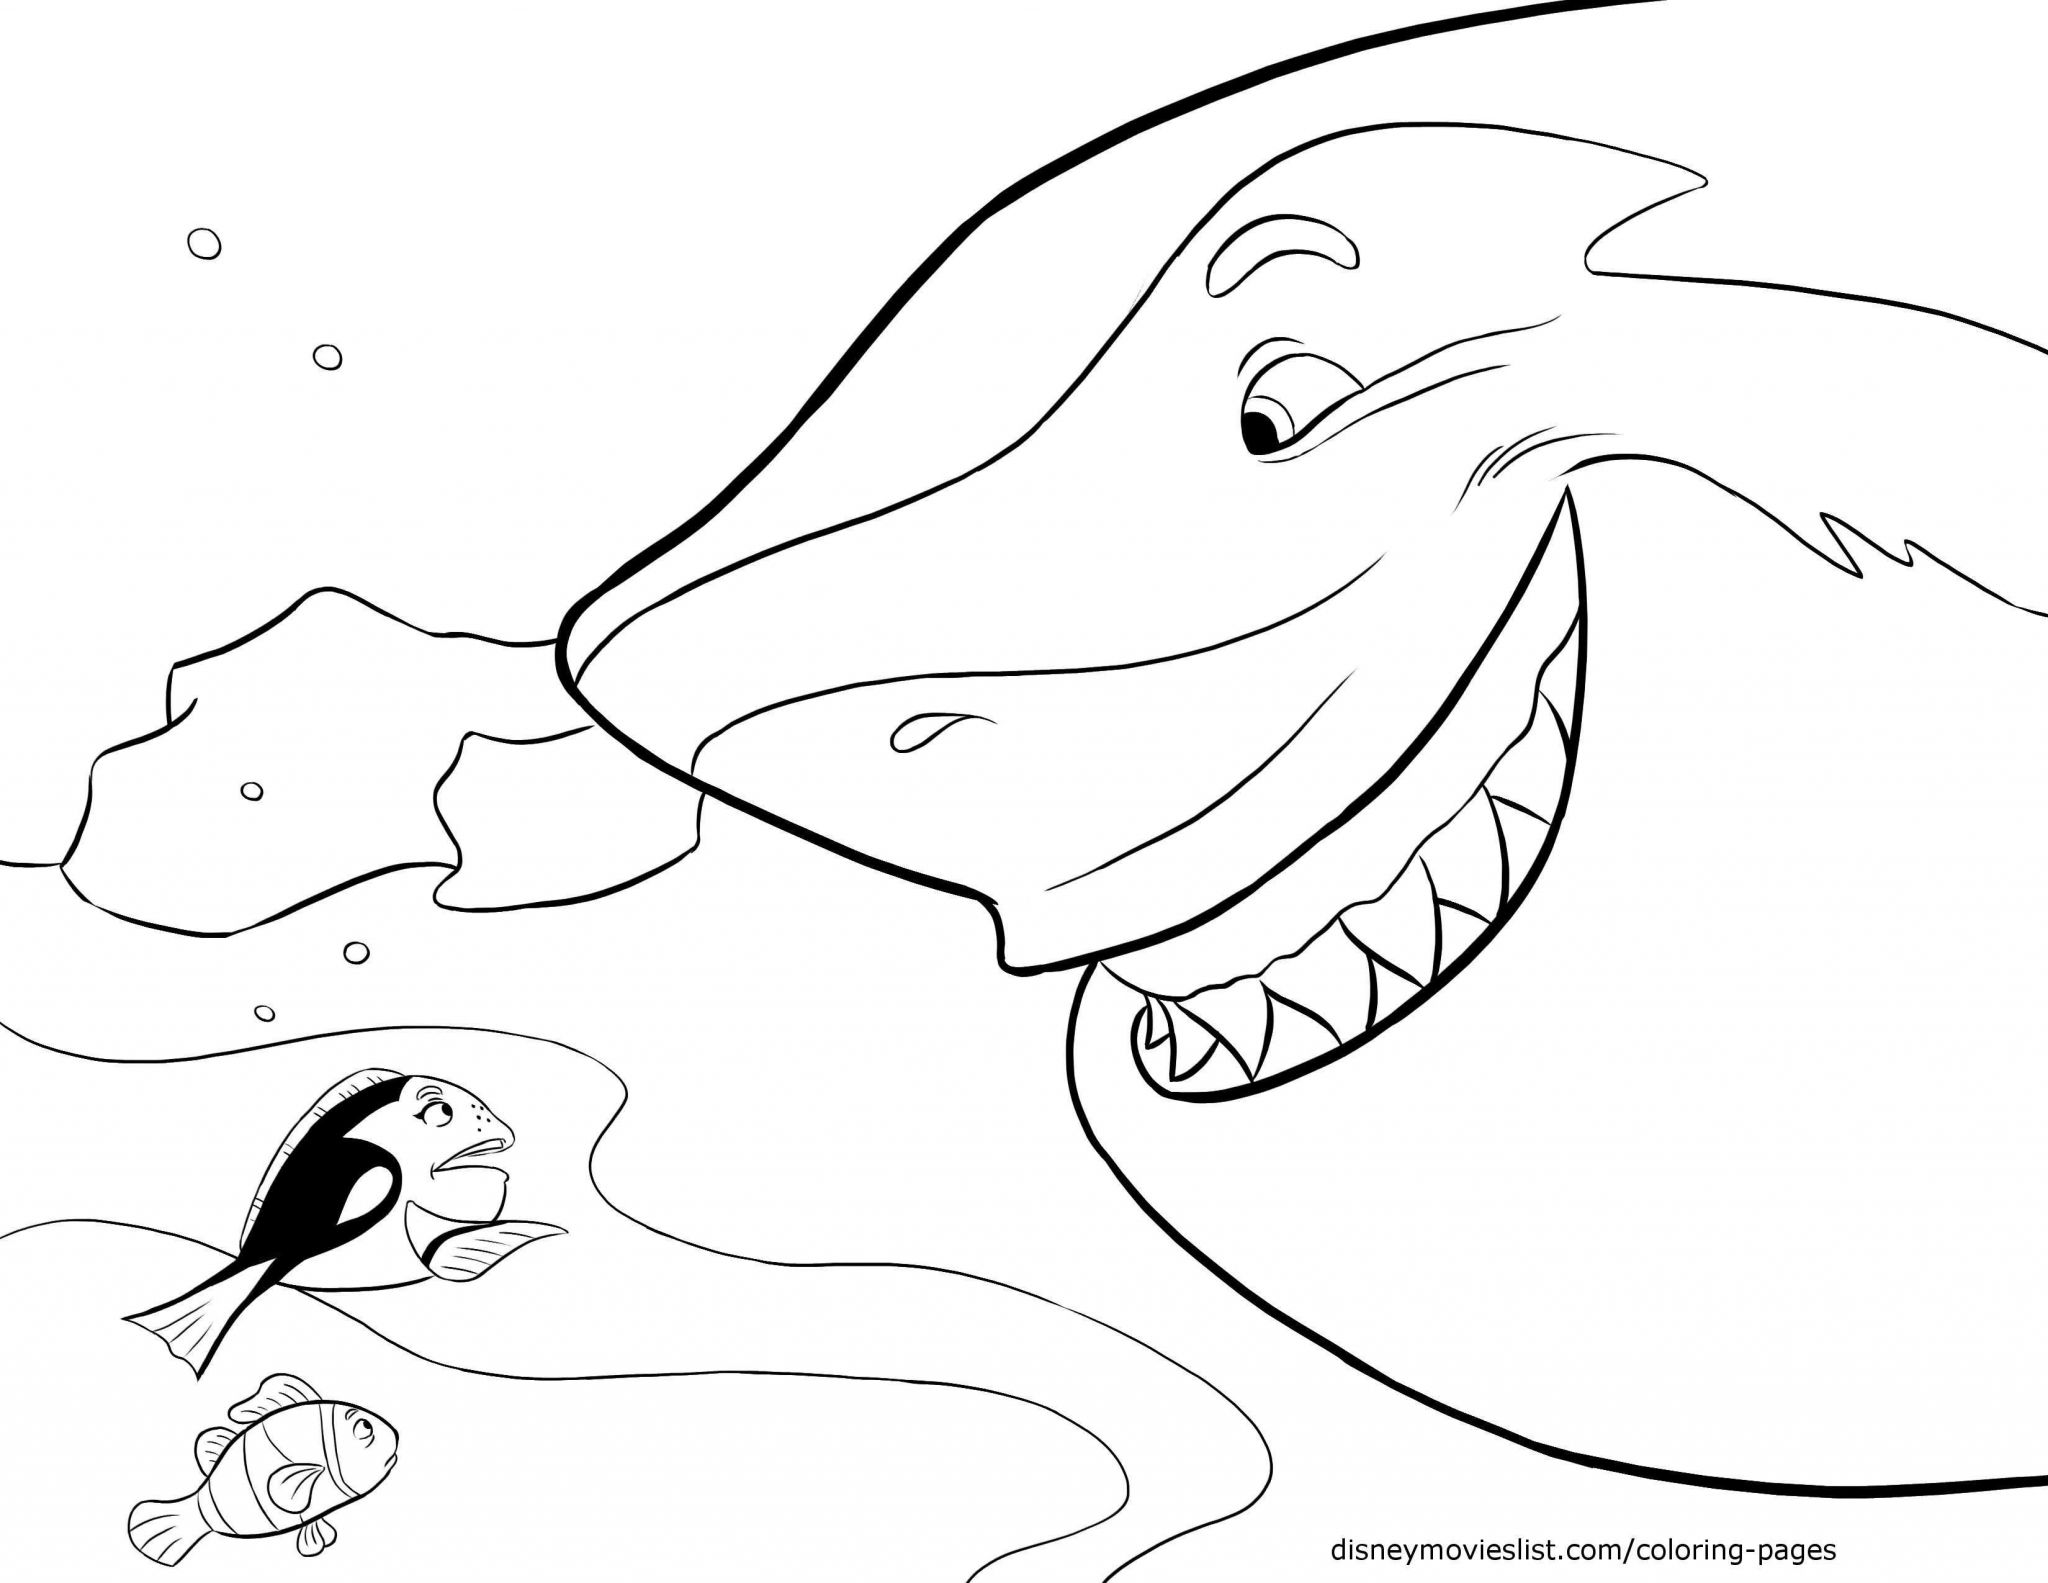 Finding Nemo Worksheet or Finding Dory Coloring Pages Printable at Getcolorings